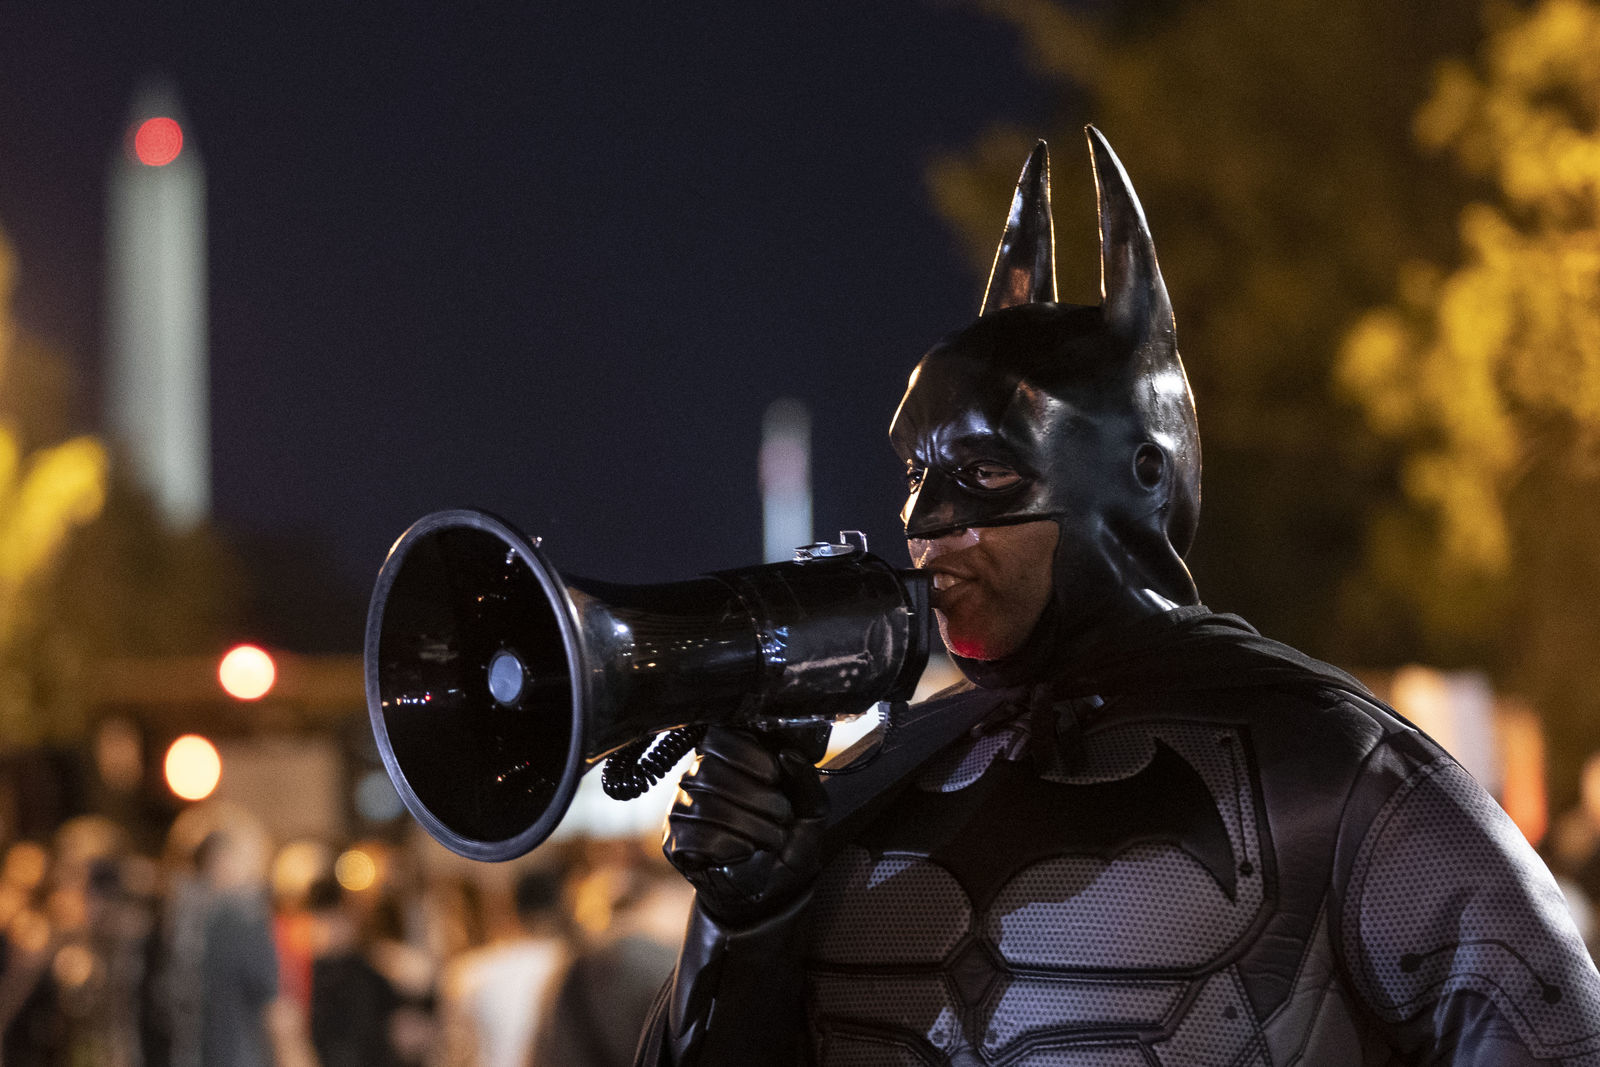 WASHINGTON, DC - JUNE 03: A man dressed as Batman joins the protest near Lafayette Park and the White House on June 3, 2020 in Washington, DC. Protests in cities throughout the country continue in the wake of the death of George Floyd, a black man who was killed in police custody in Minneapolis on May 25. (Photo by Drew Angerer/Getty Images)